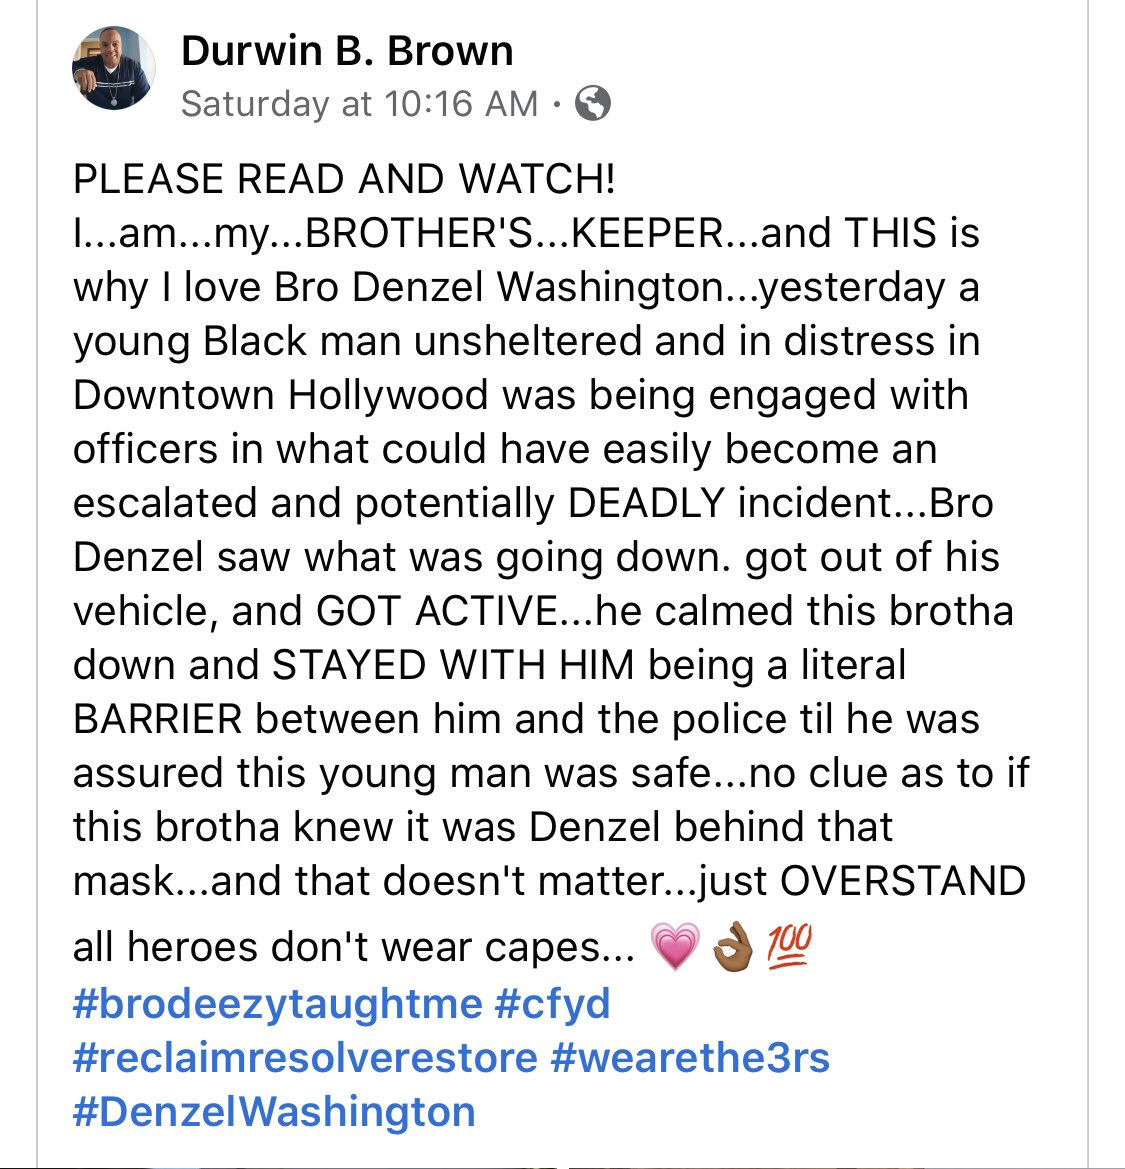 Denzel Washington saved a black man from being shot by LAPD. We all know how shit would've went down if Denzel didn't notice https://t.co/4MFN9DPNQ1